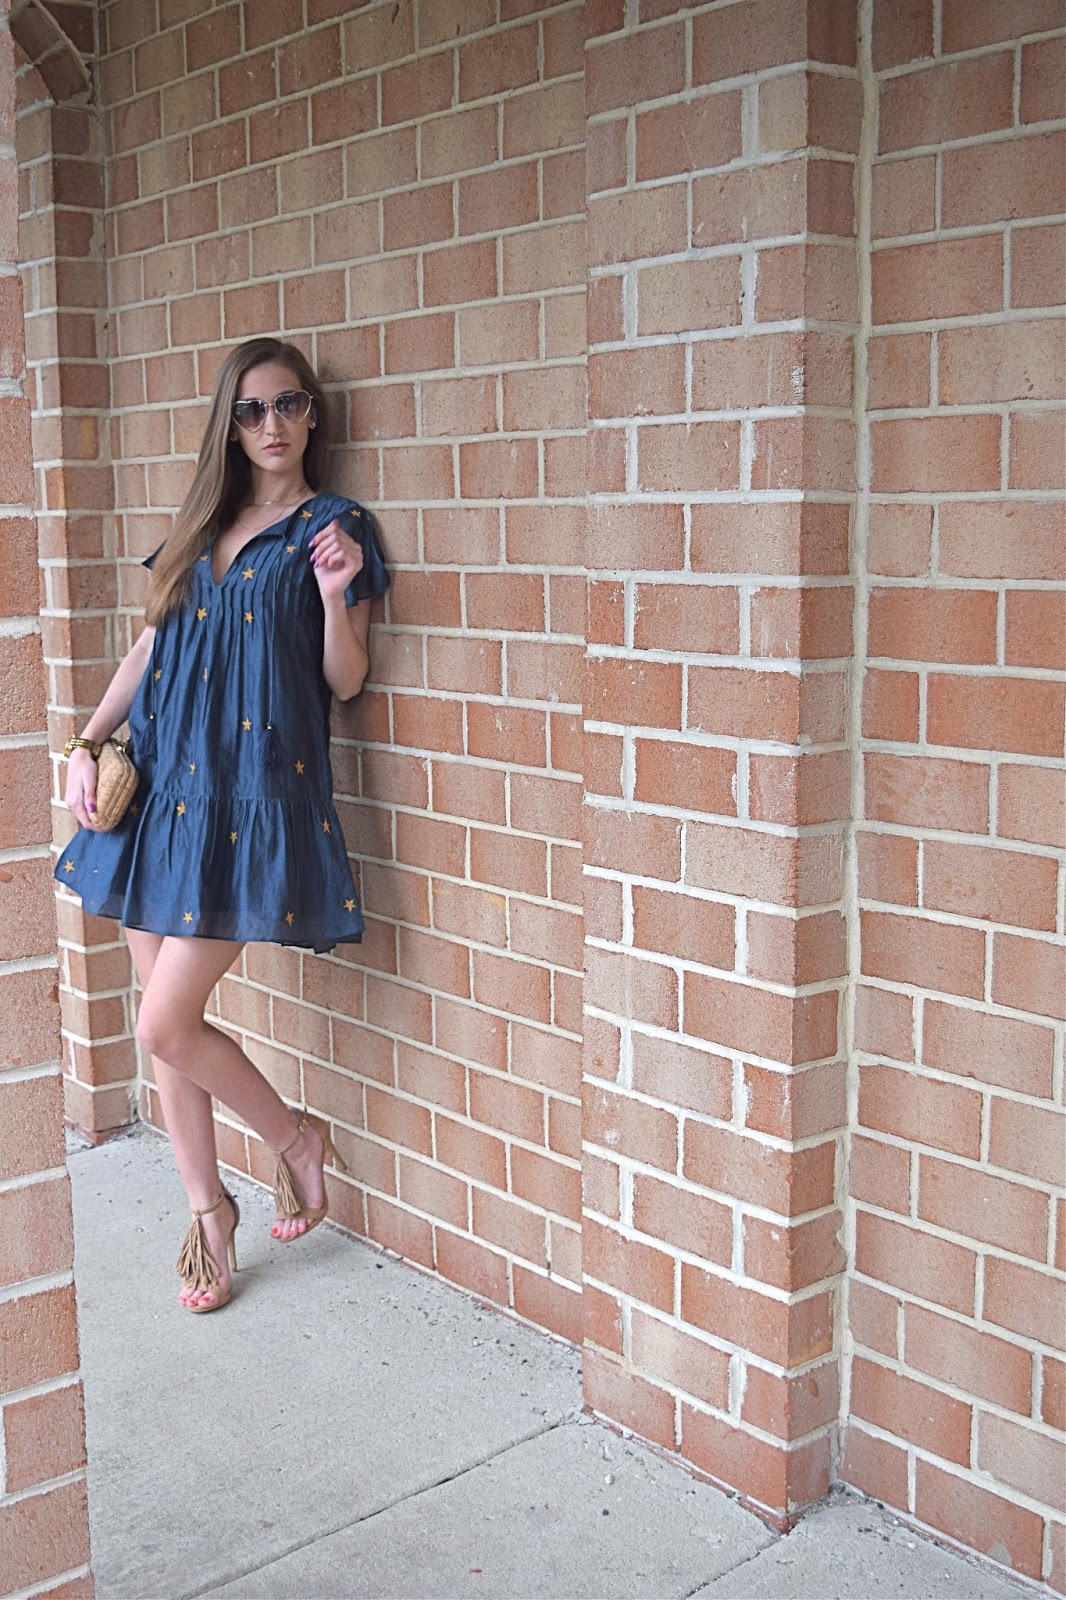 wearing Tularosa Carson Dress, Express Fringe Tassel Heel, BP nordstrom heart sunglasses